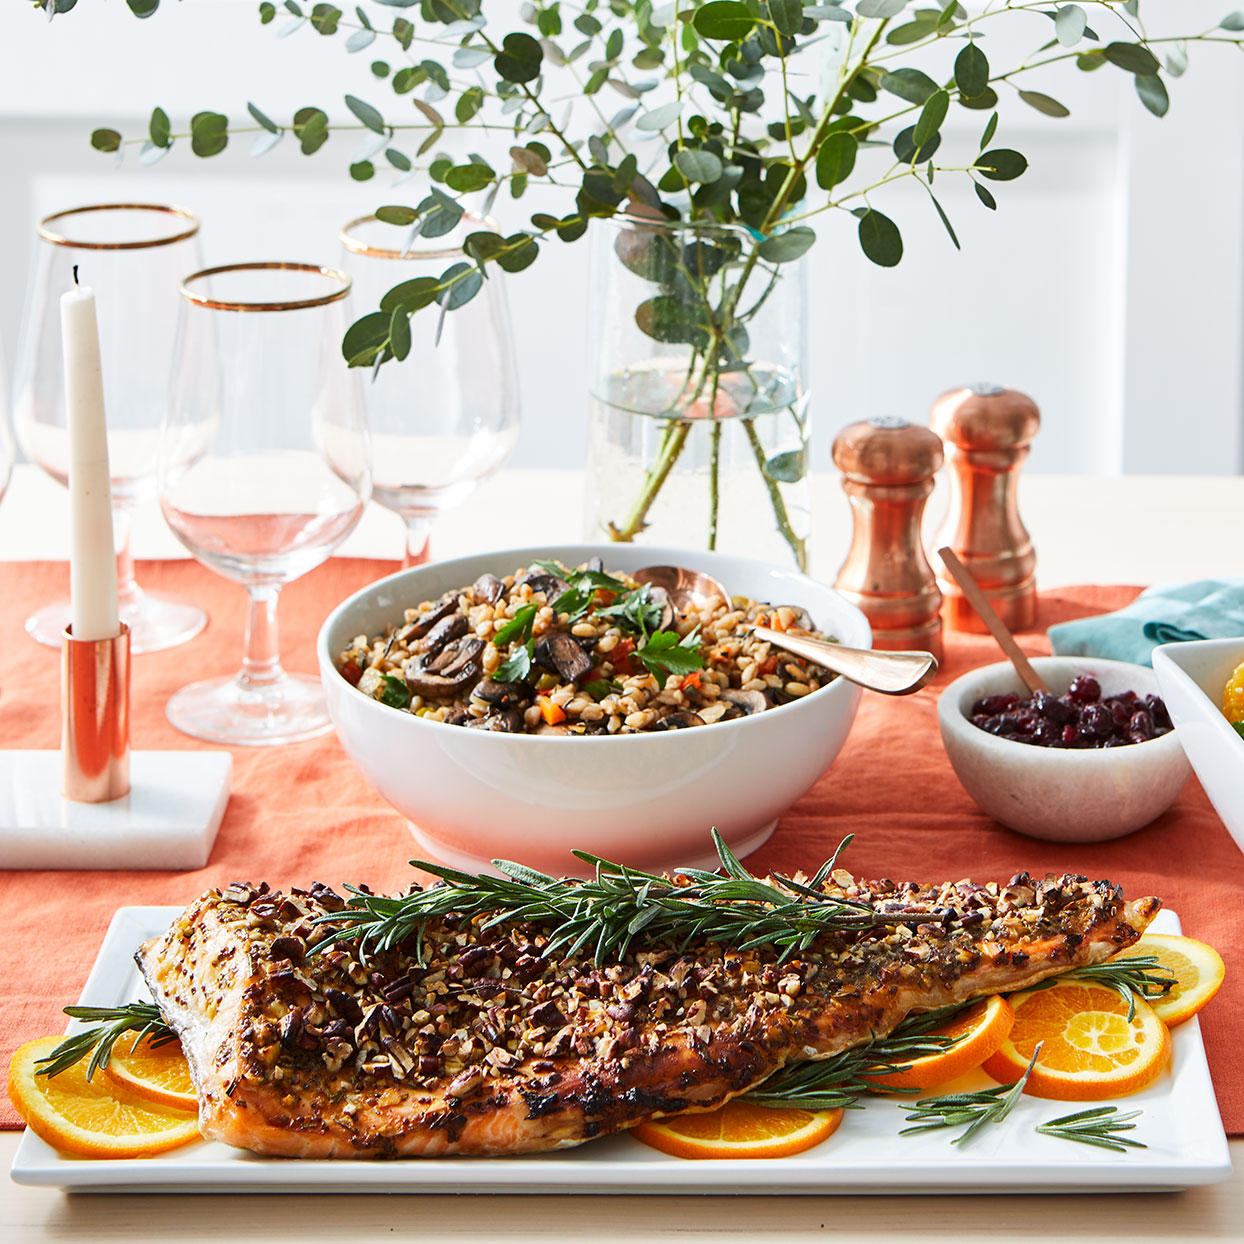 Pecan-Rosemary Crusted Salmon